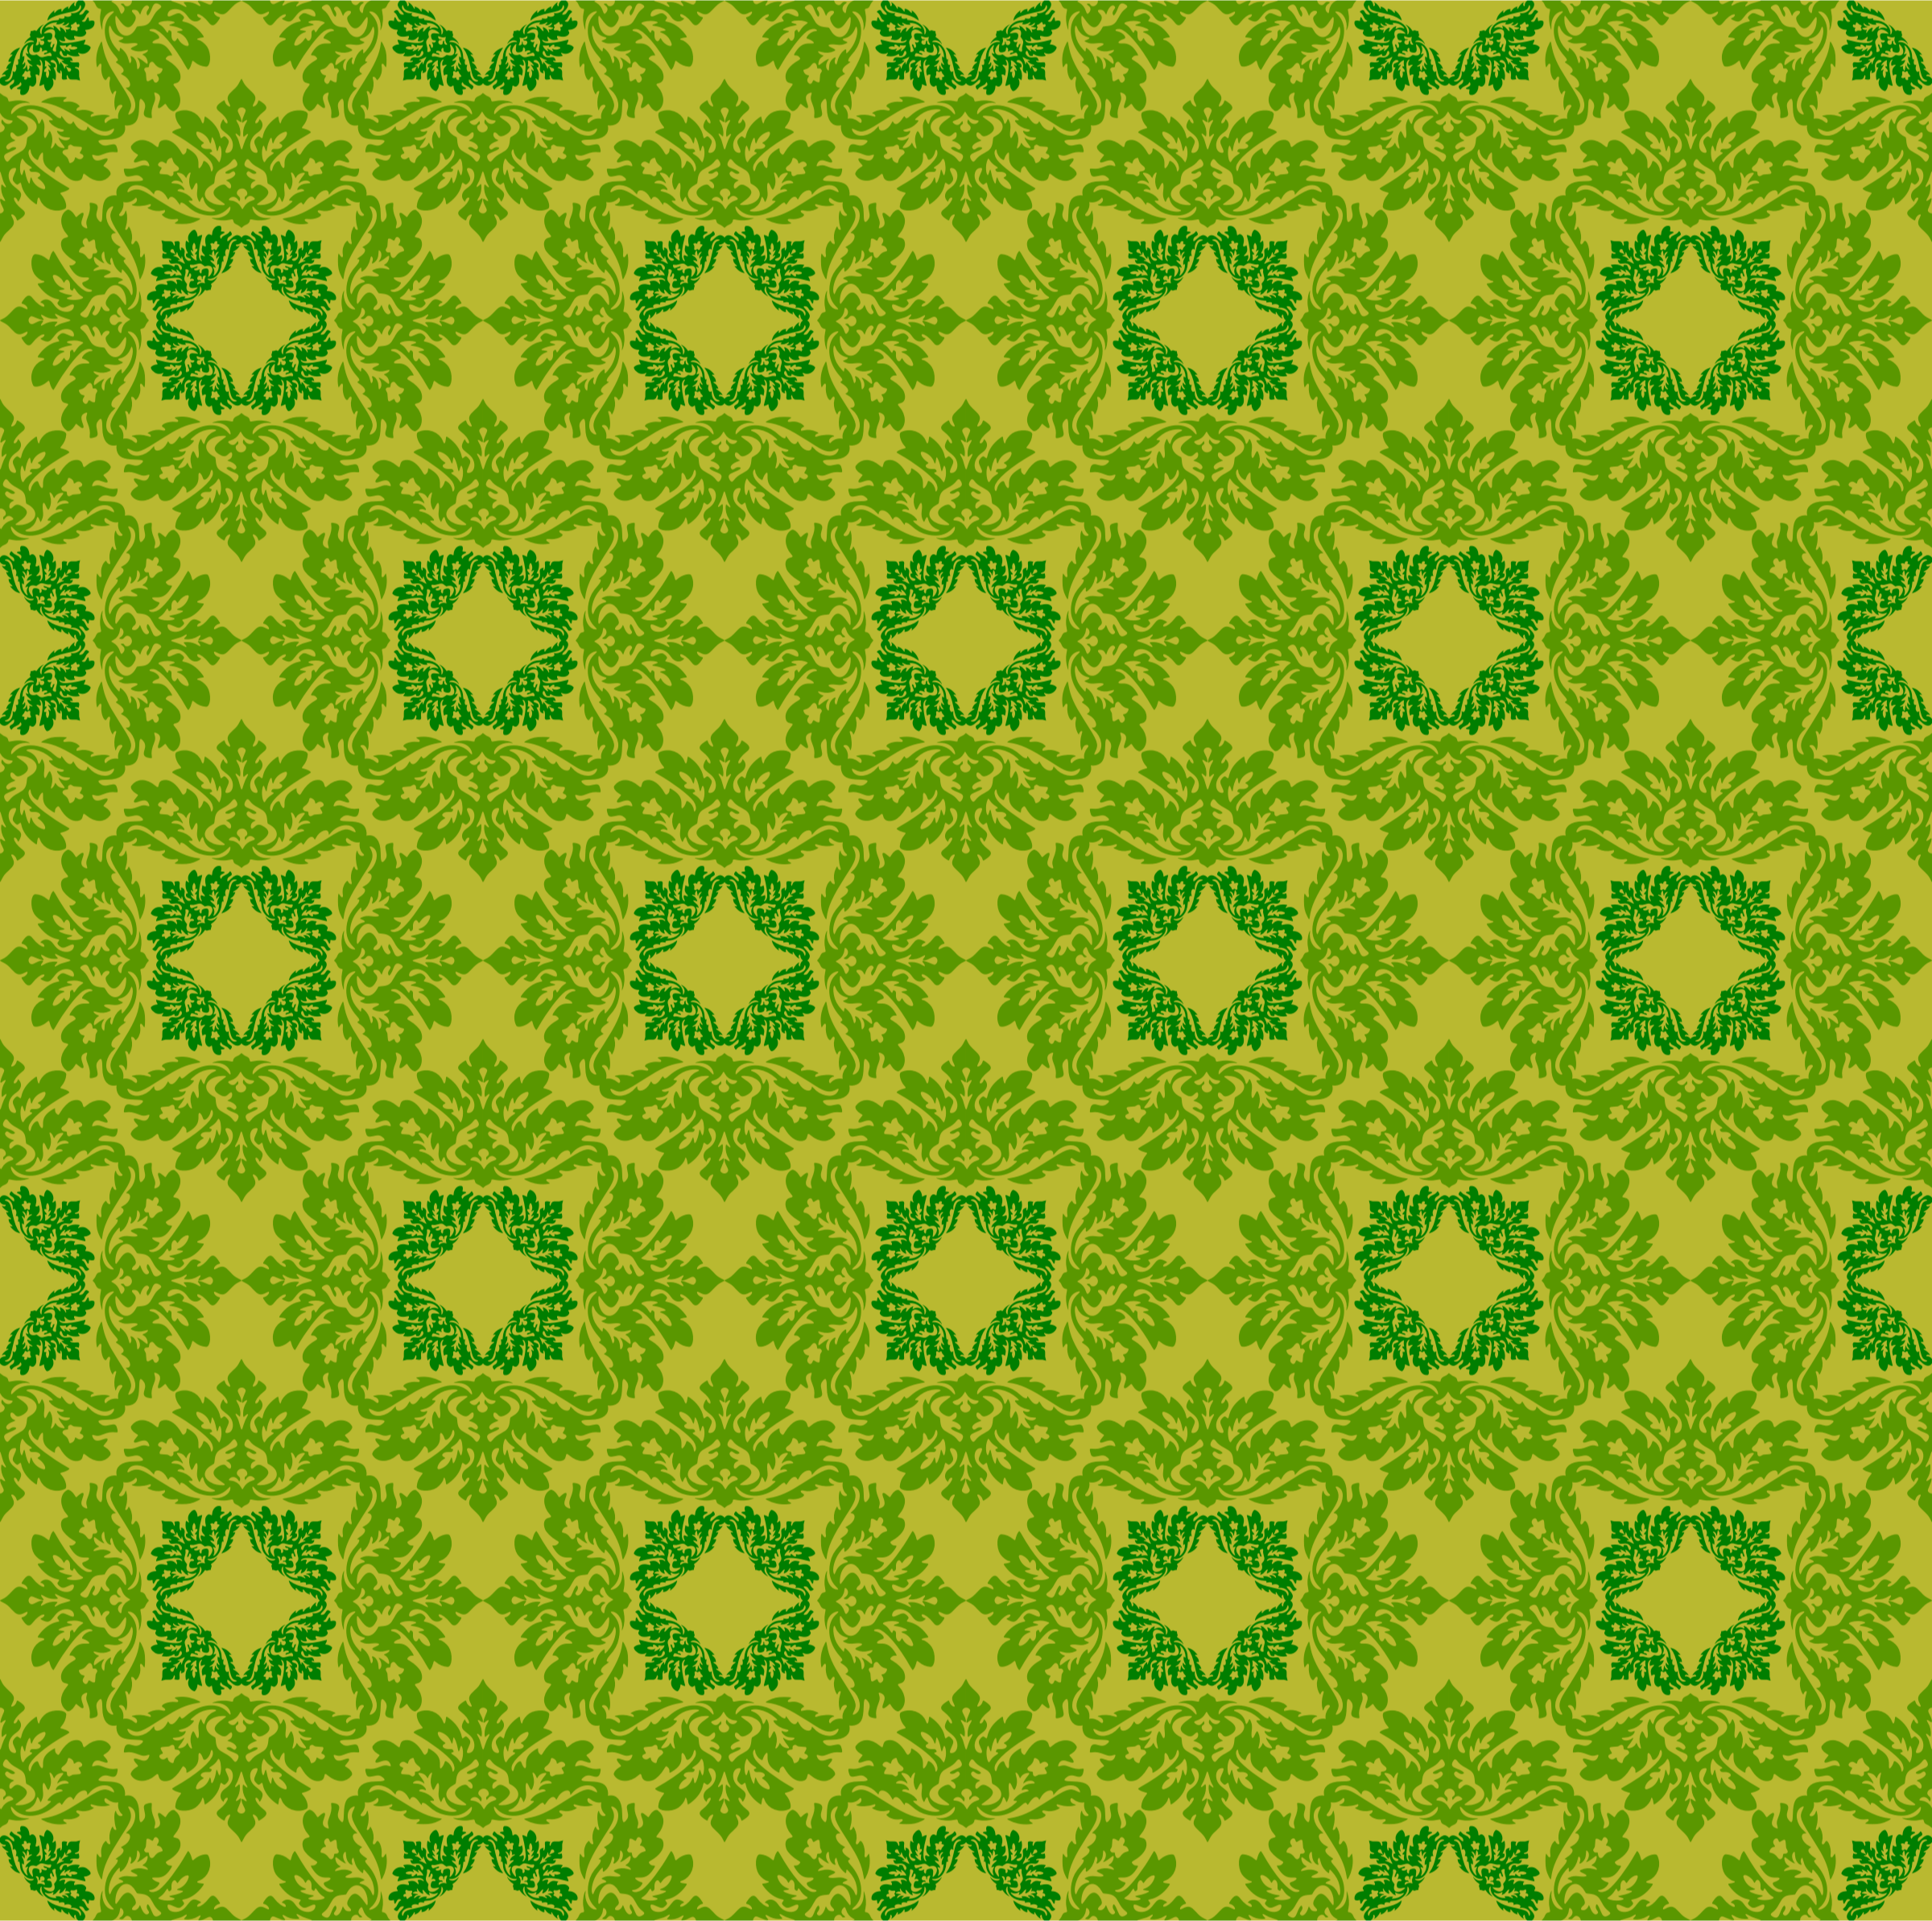 Background pattern 338 (colour 3) by Firkin